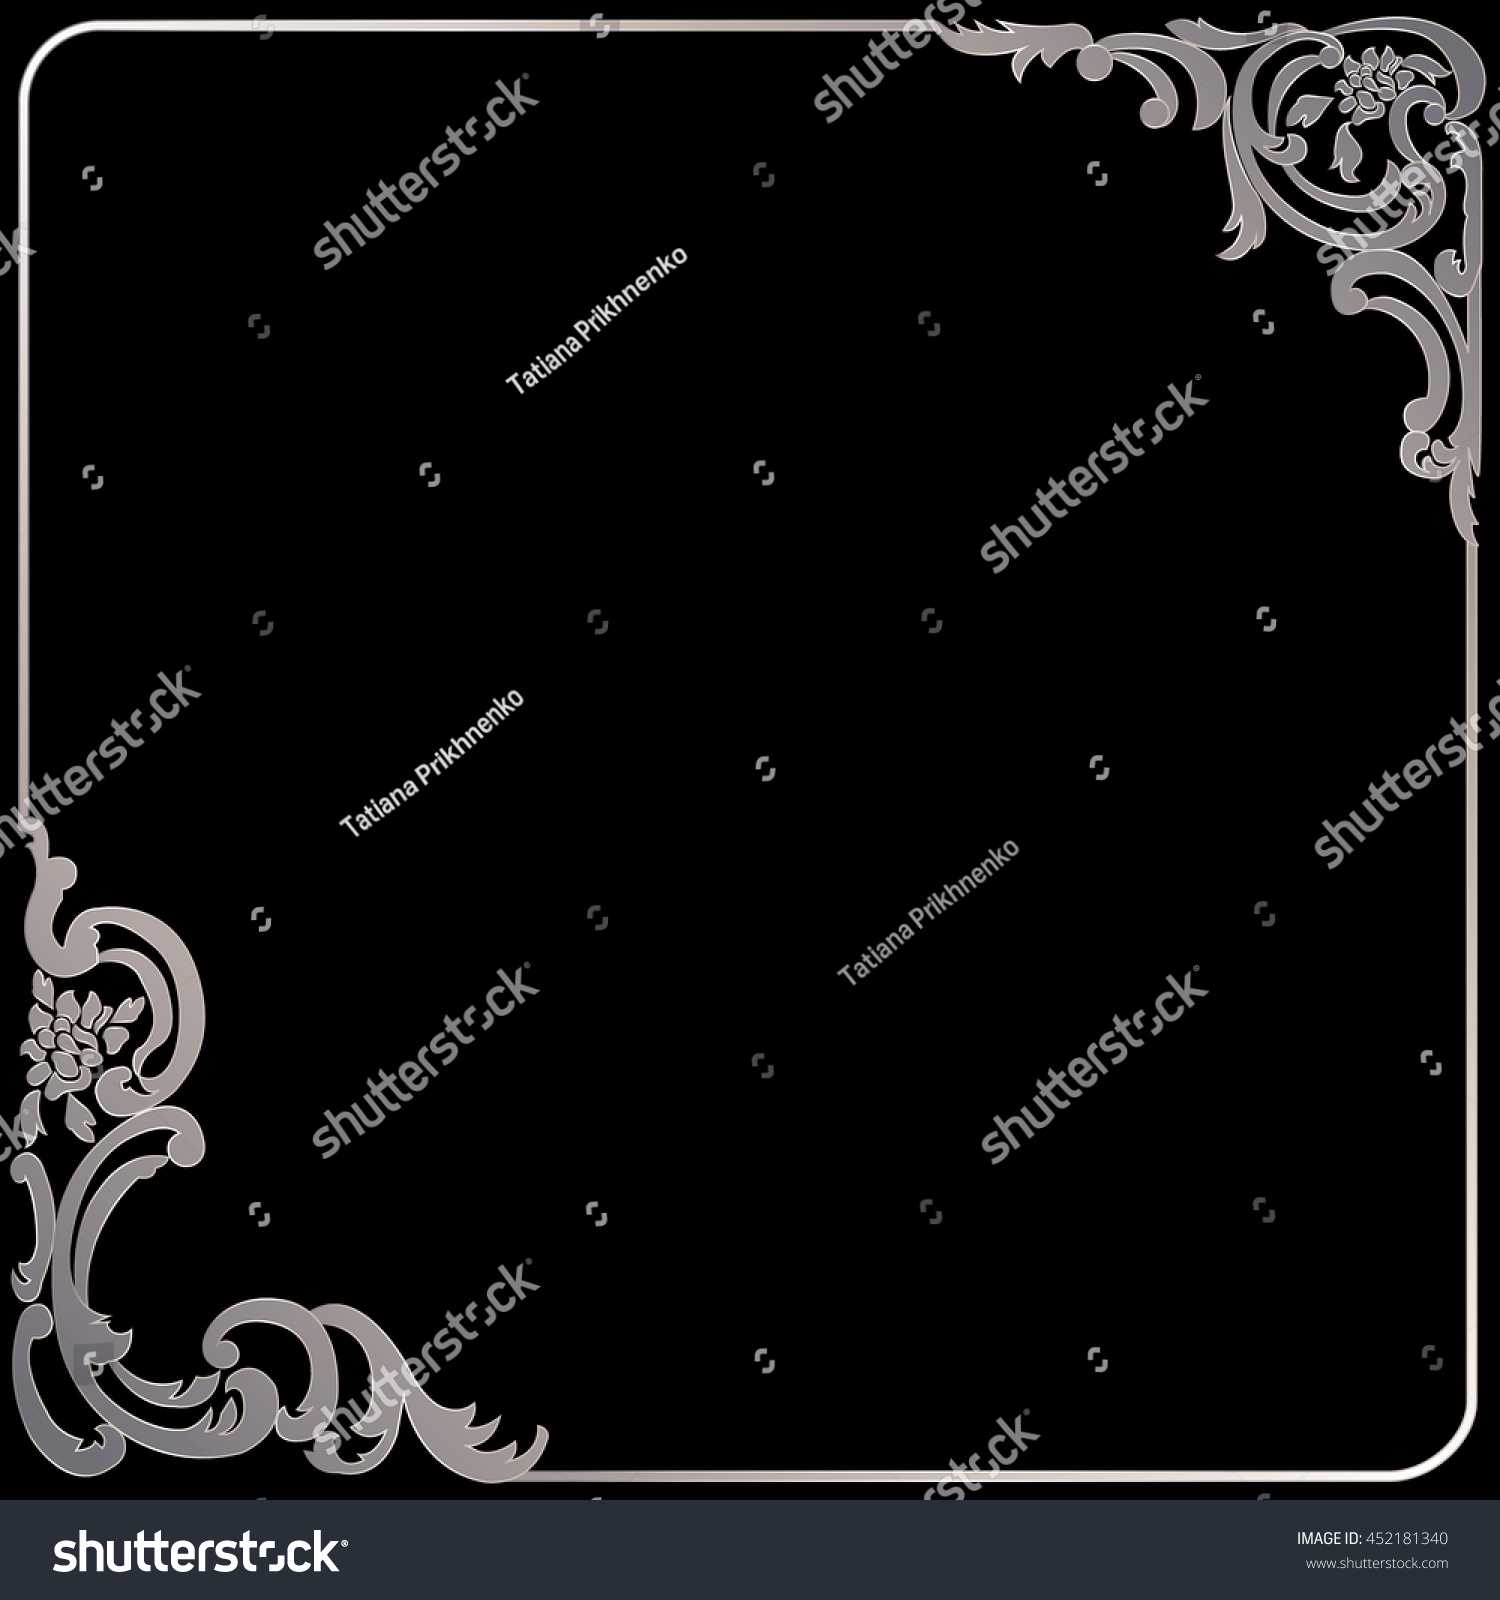 Silver vintage frame in baroque style on a black background